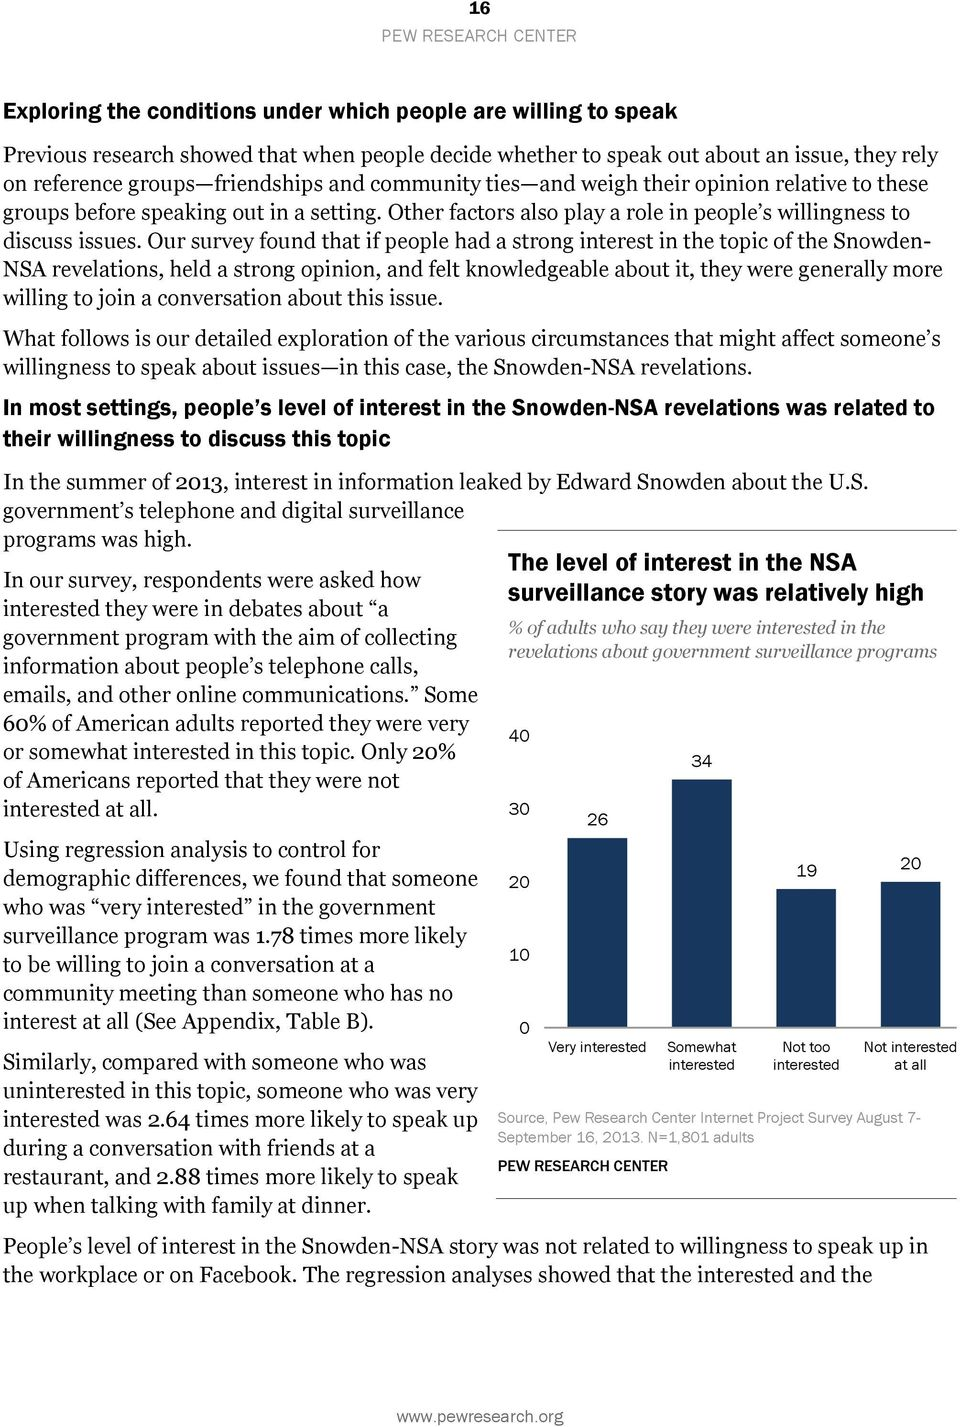 Our survey found that if people had a strong interest in the topic of the Snowden- NSA revelations, held a strong opinion, and felt knowledgeable about it, they were generally more willing to join a